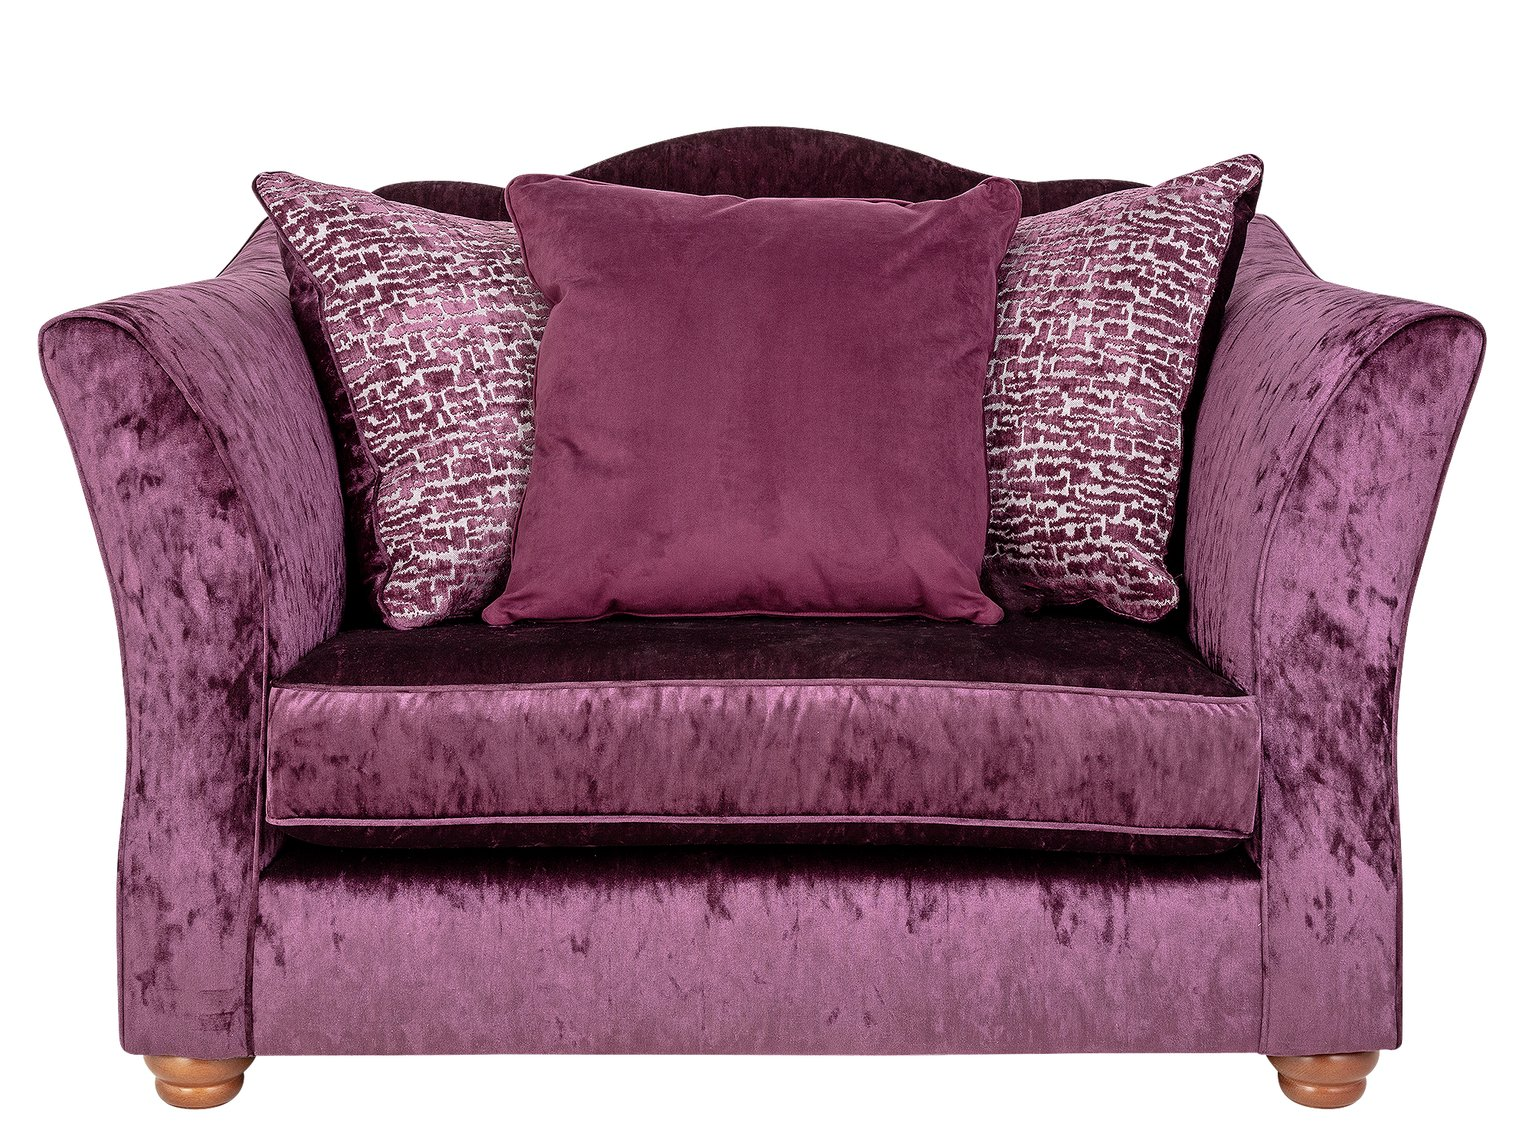 Argos Home Fantasia Velvet Cuddle Chair - Purple